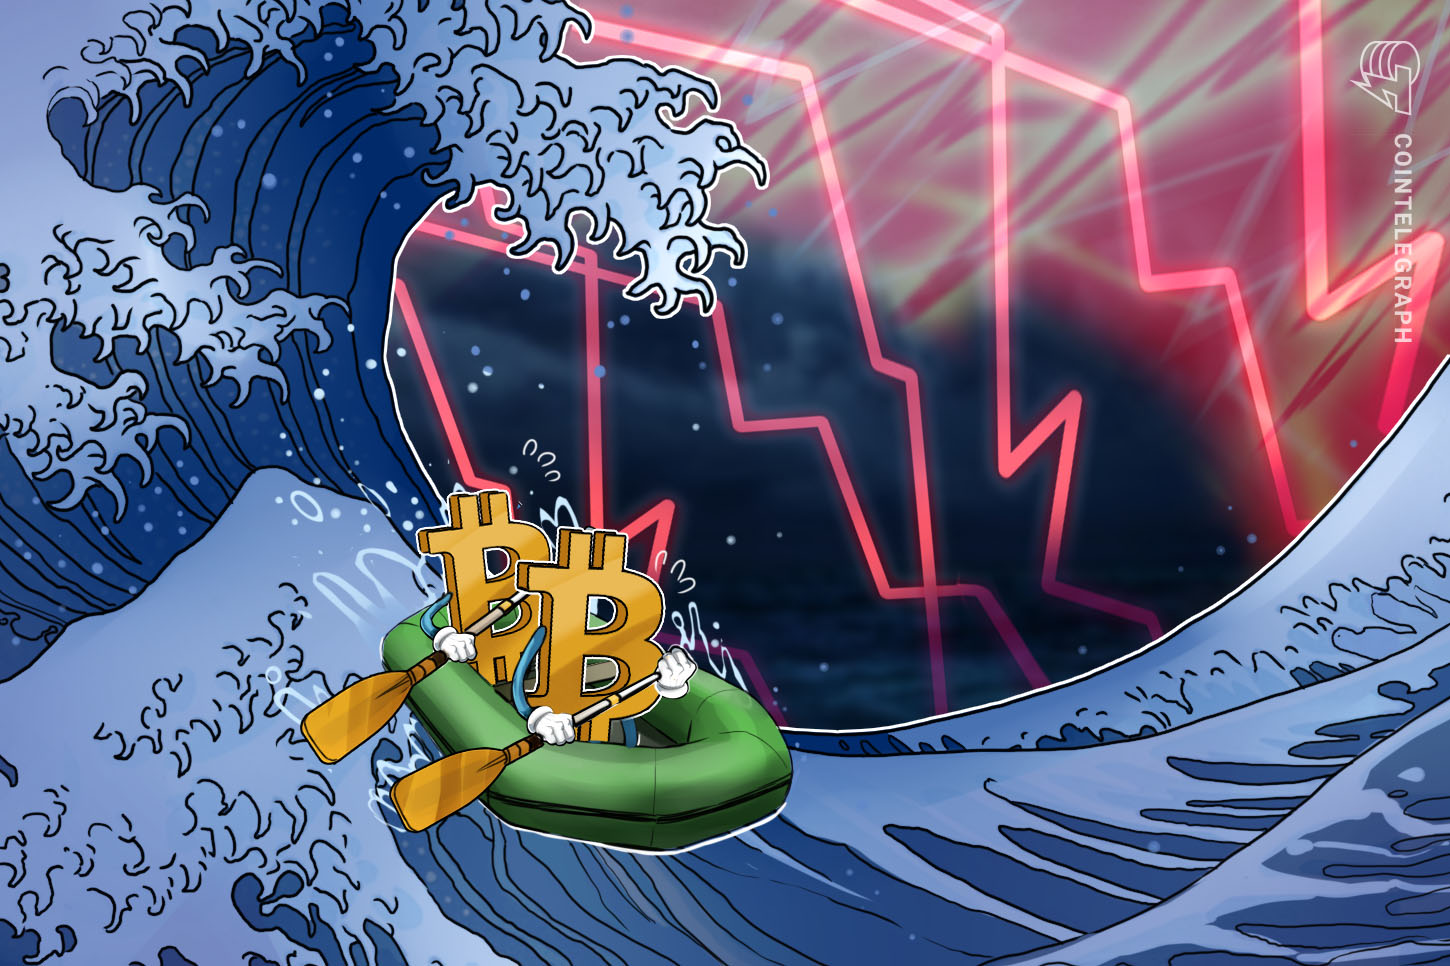 Bitcoin drops to $46K, altcoins sell-off as report claims Binance is under investigation